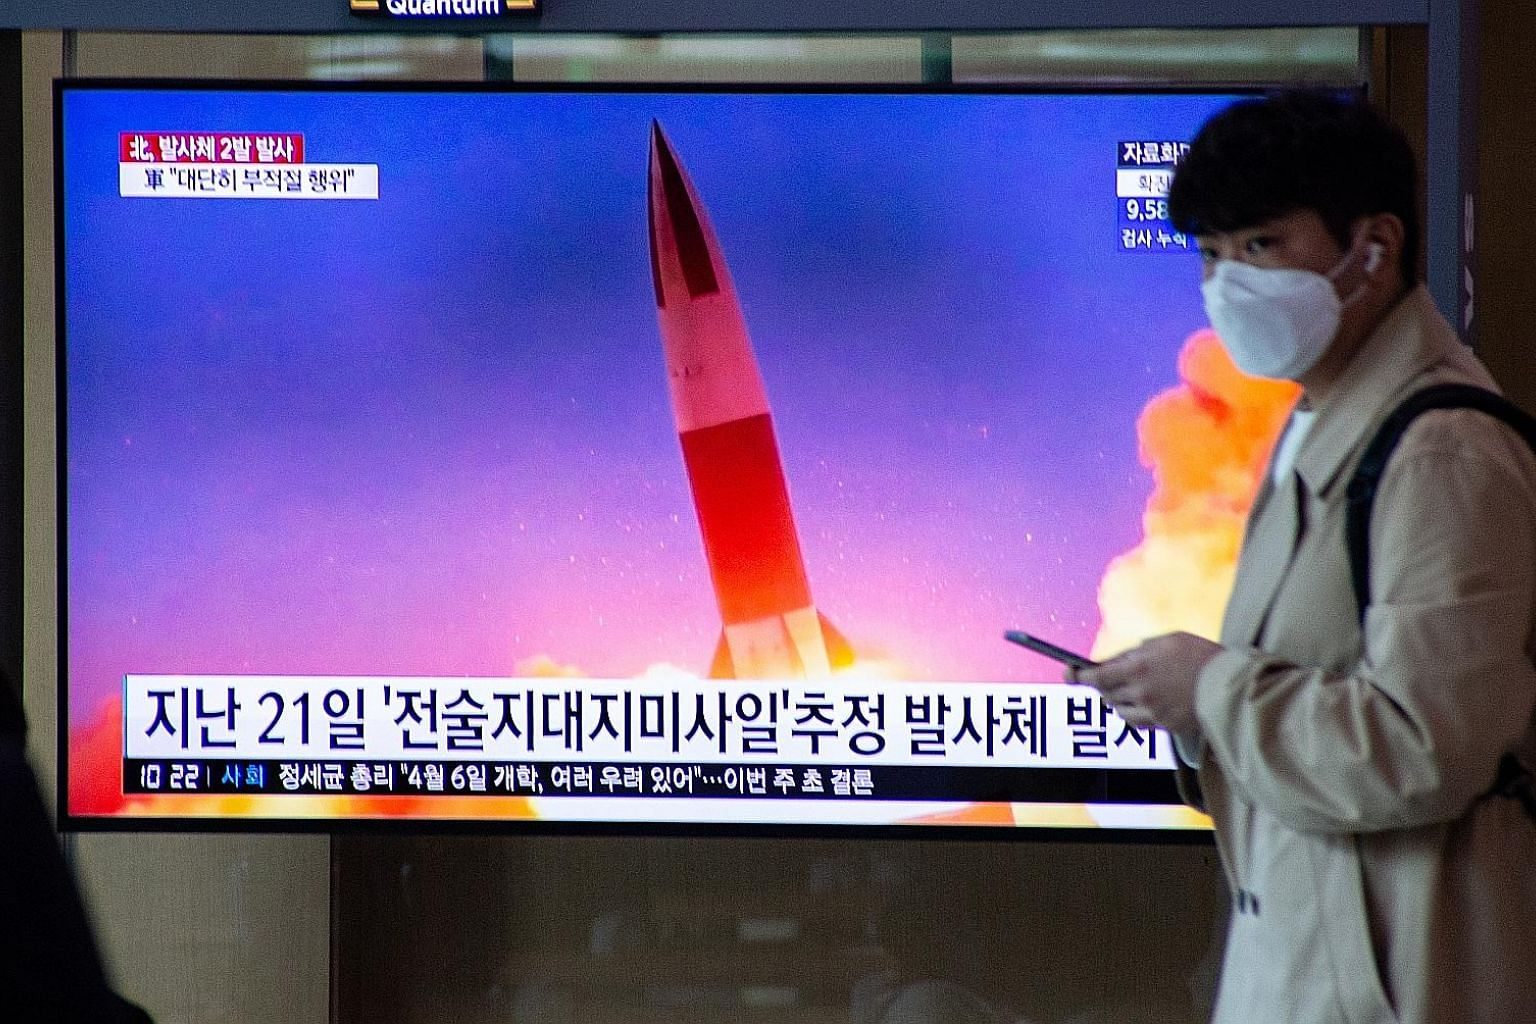 A news broadcast on North Korea's latest projectile launch seen at a Seoul train station yesterday. North Korea fired what appeared to be two short-range ballistic missiles from the coastal Wonsan area, according to South Korea, which called for an i